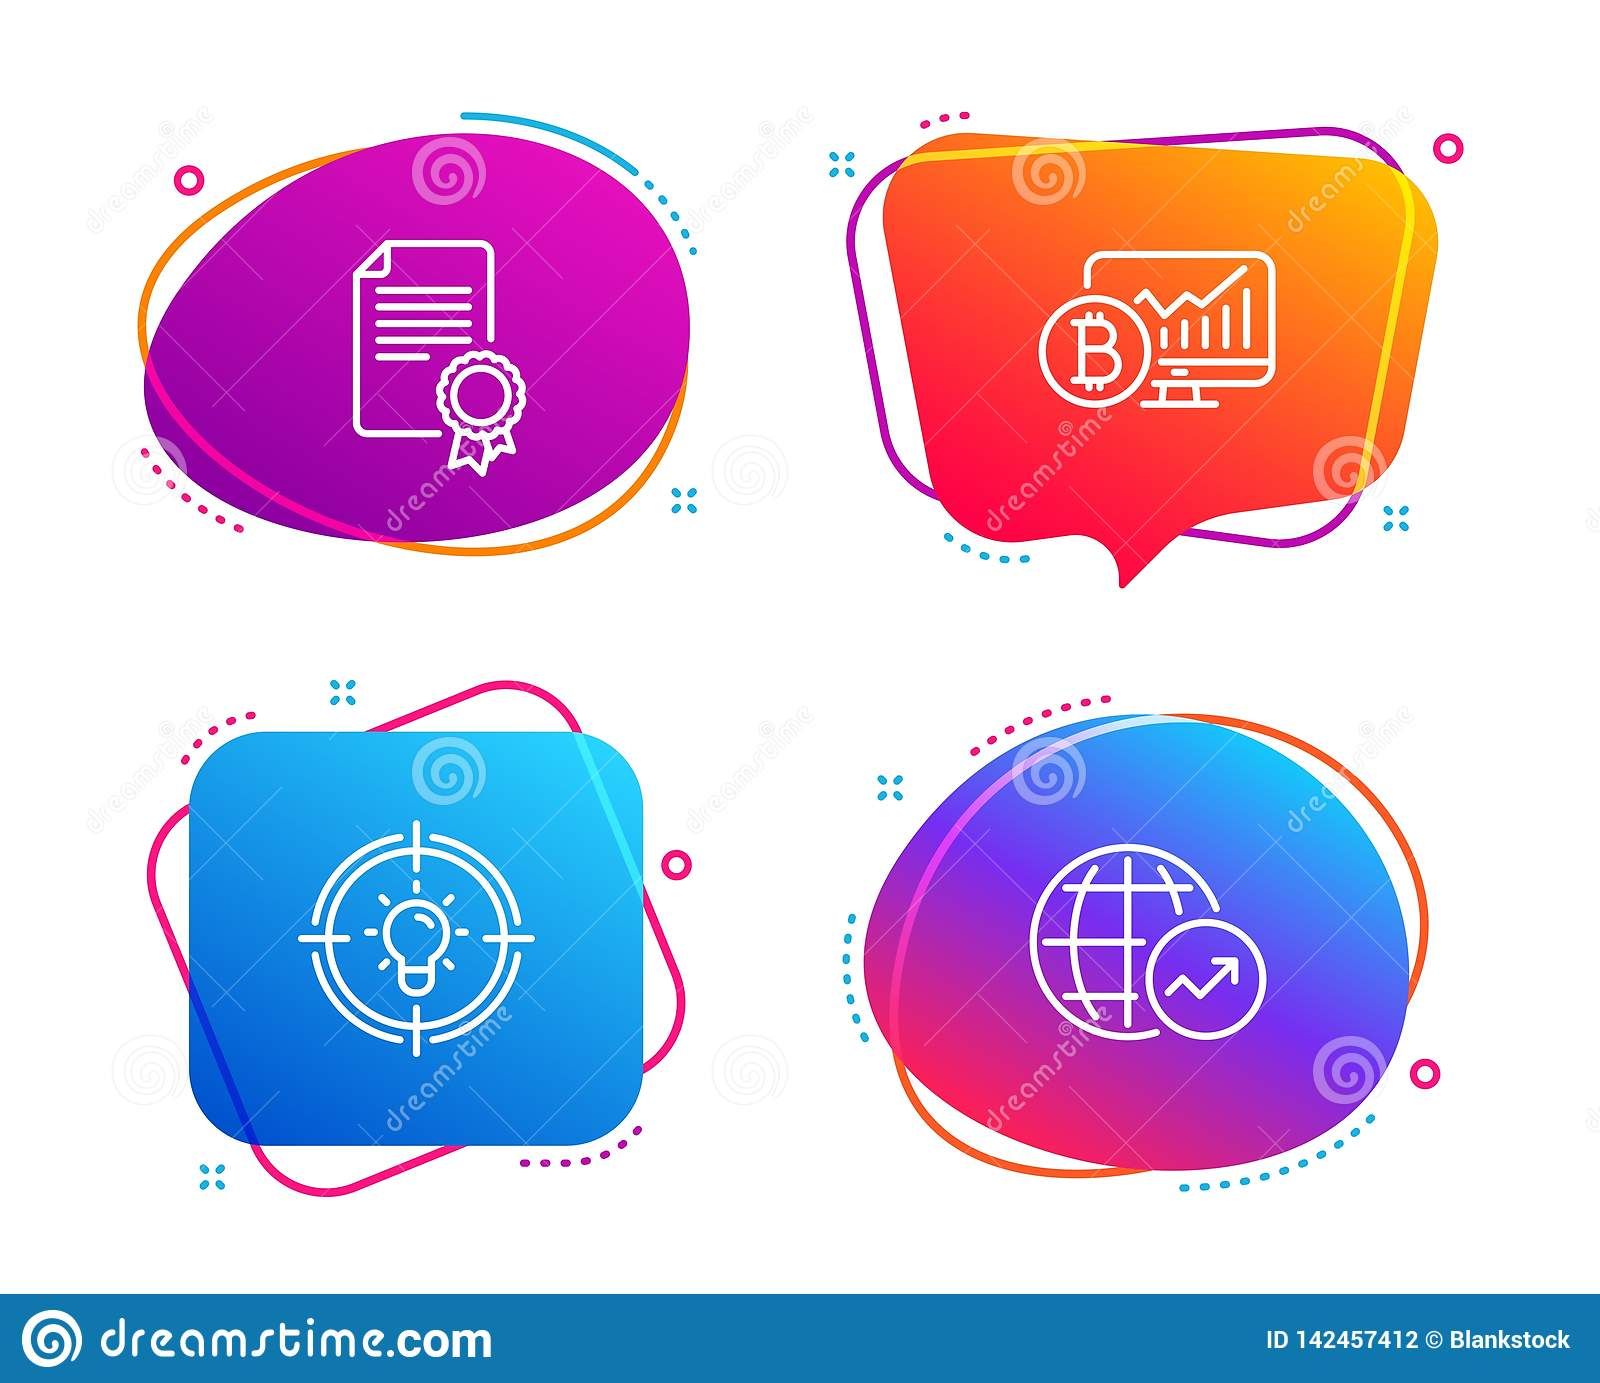 hight resolution of certificate bitcoin chart and idea icons set world statistics sign vector